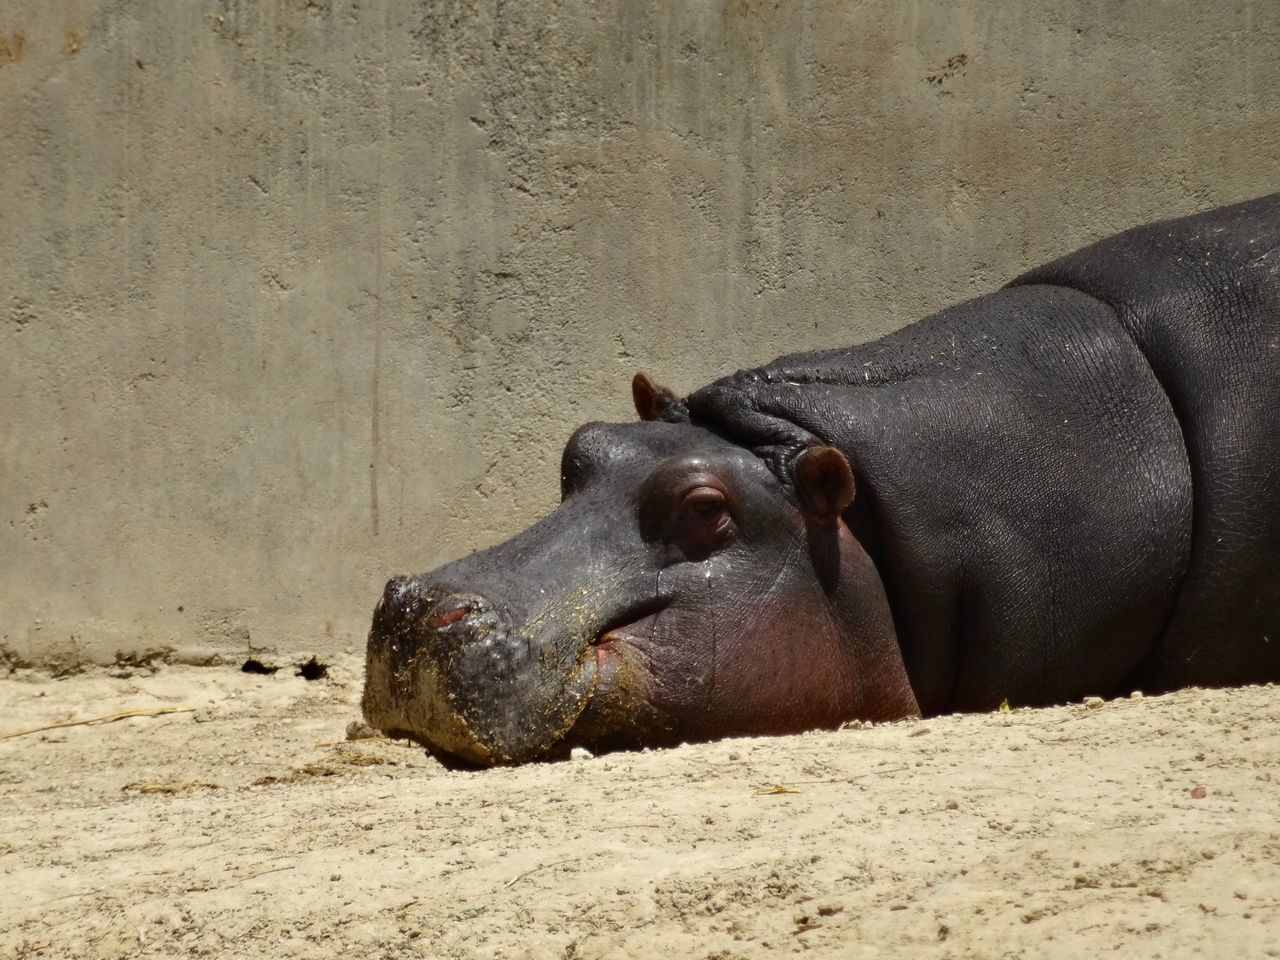 Sand Animal Themes One Animal Sunlight Relaxation Nature No People Outdoors Day Close-up Sunlight Sunbathing Lazy Animal In The Zoo Hippopotamus